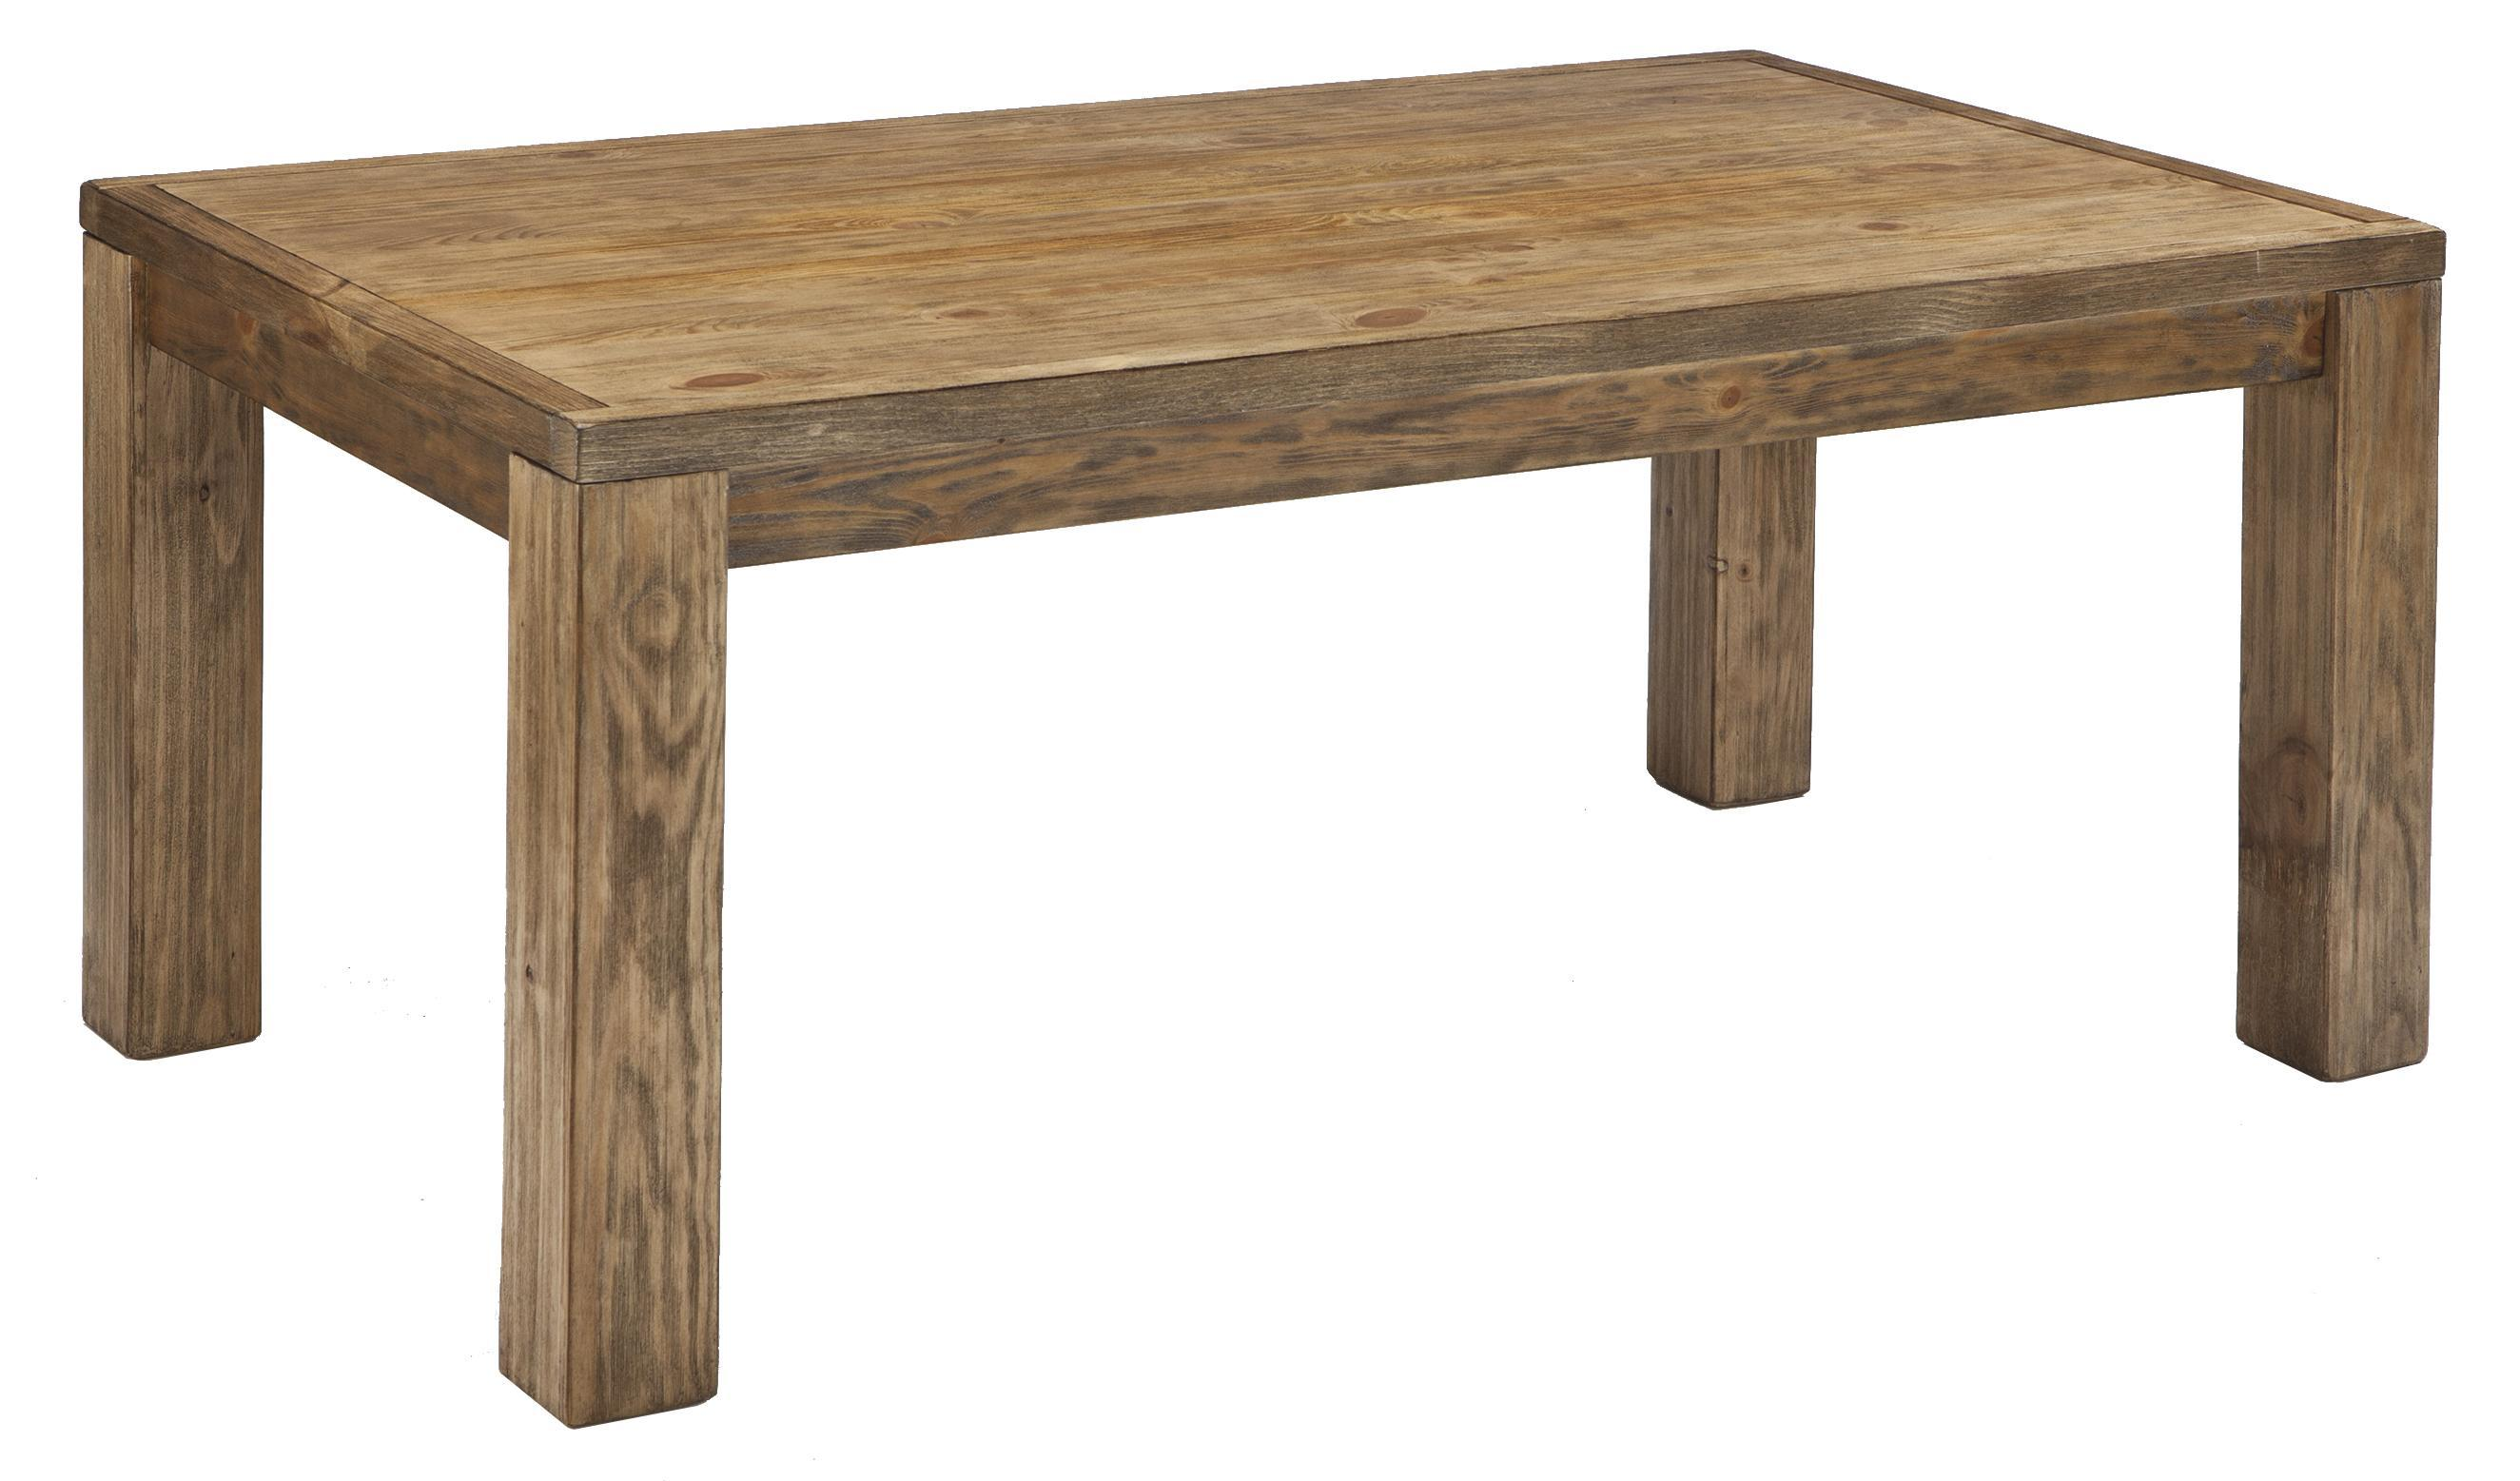 Mestler Honey Pine Rectangular Dining Room Table With Block Legs From